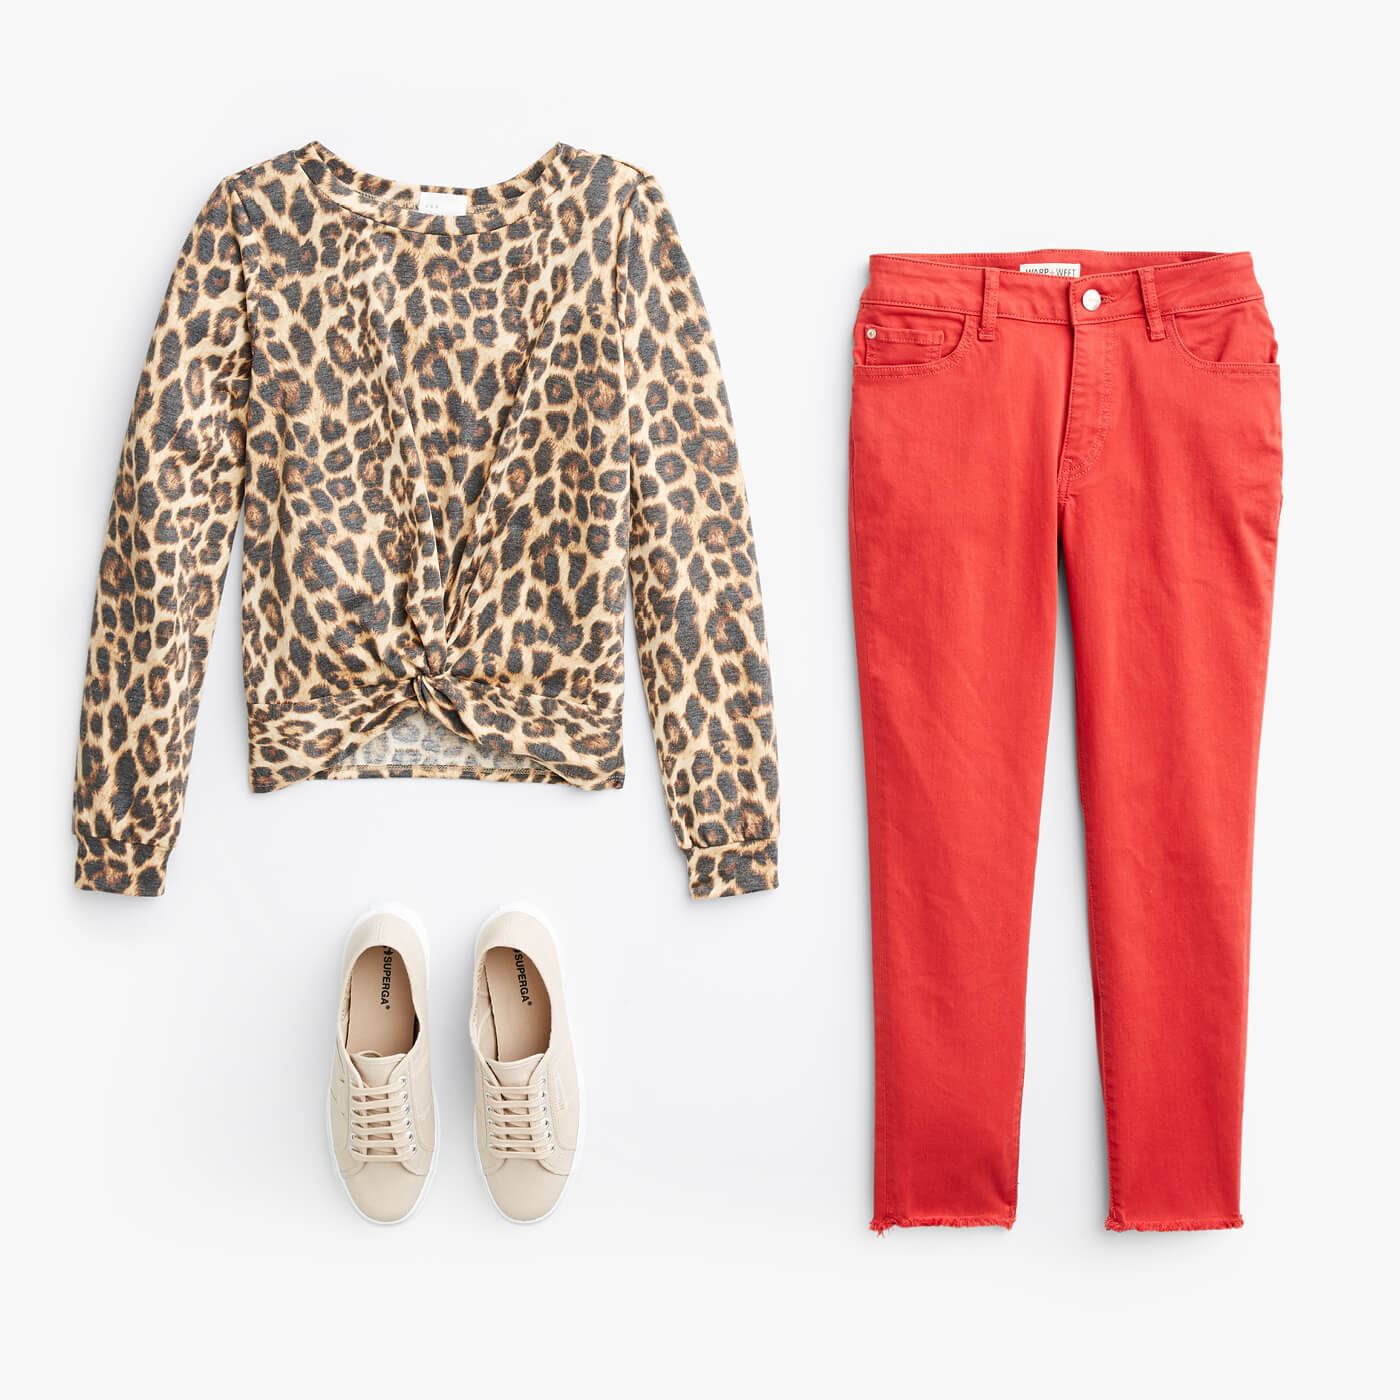 T3_W20_BLG_AAS_Trending Animal Prints_382559339_2